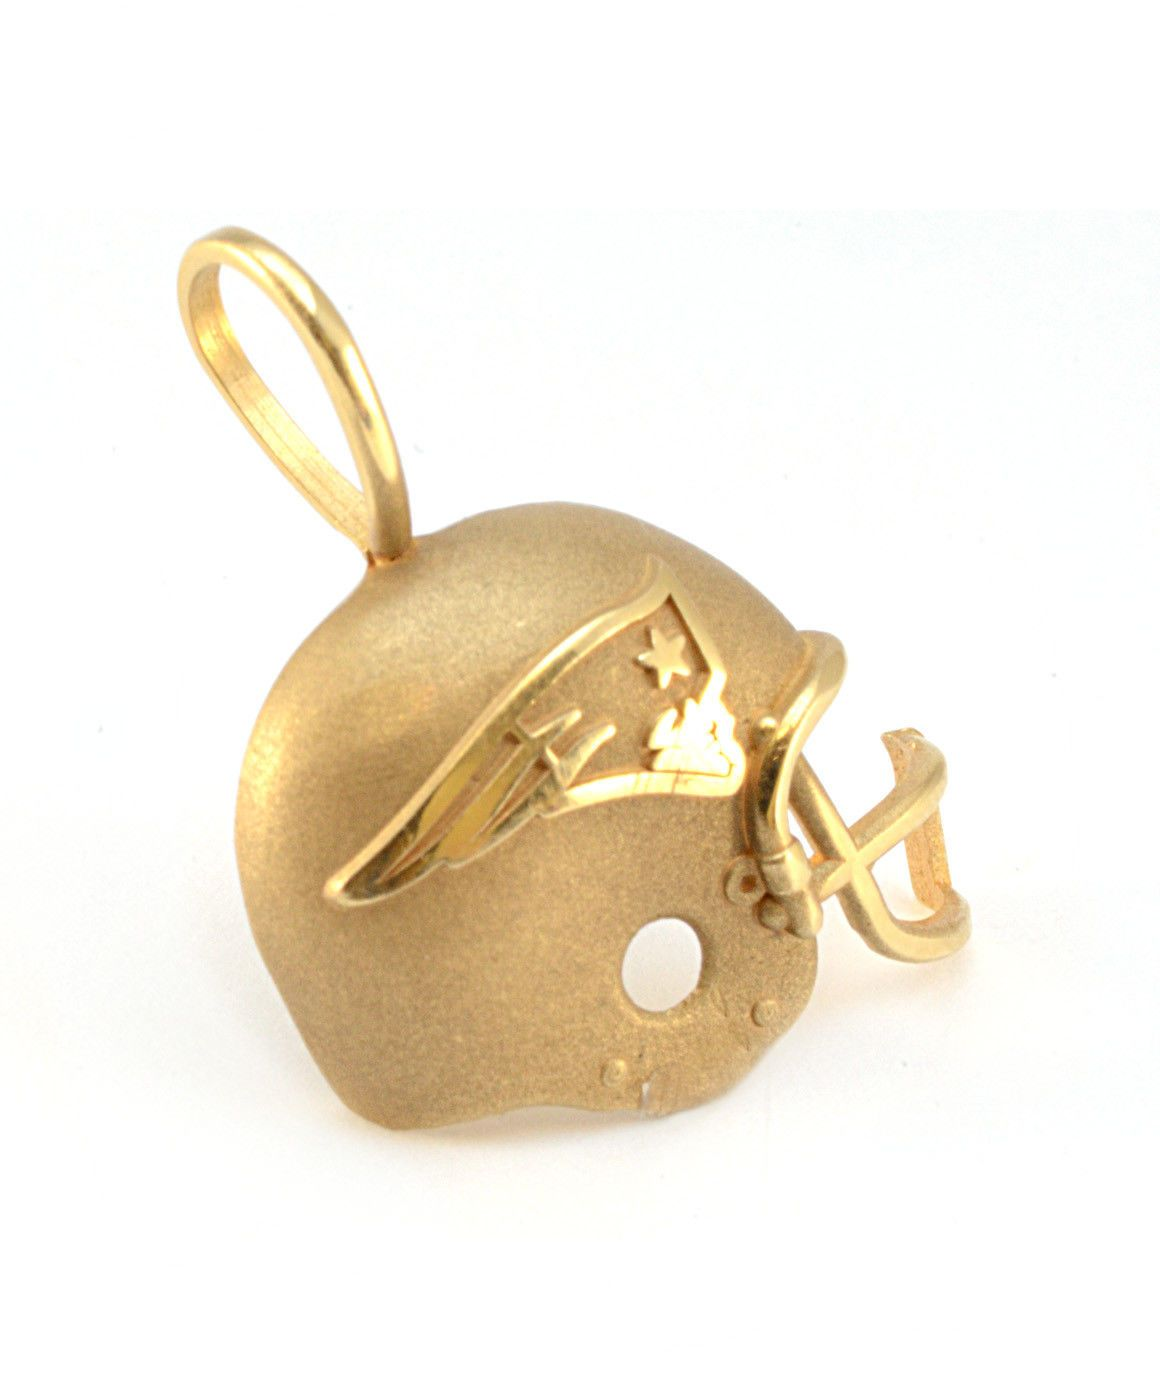 Solid 14k Yellow Gold New England Patriots Helmet Pendant 2 2g New England Patriots Helmet New England Patriots 14k Yellow Gold